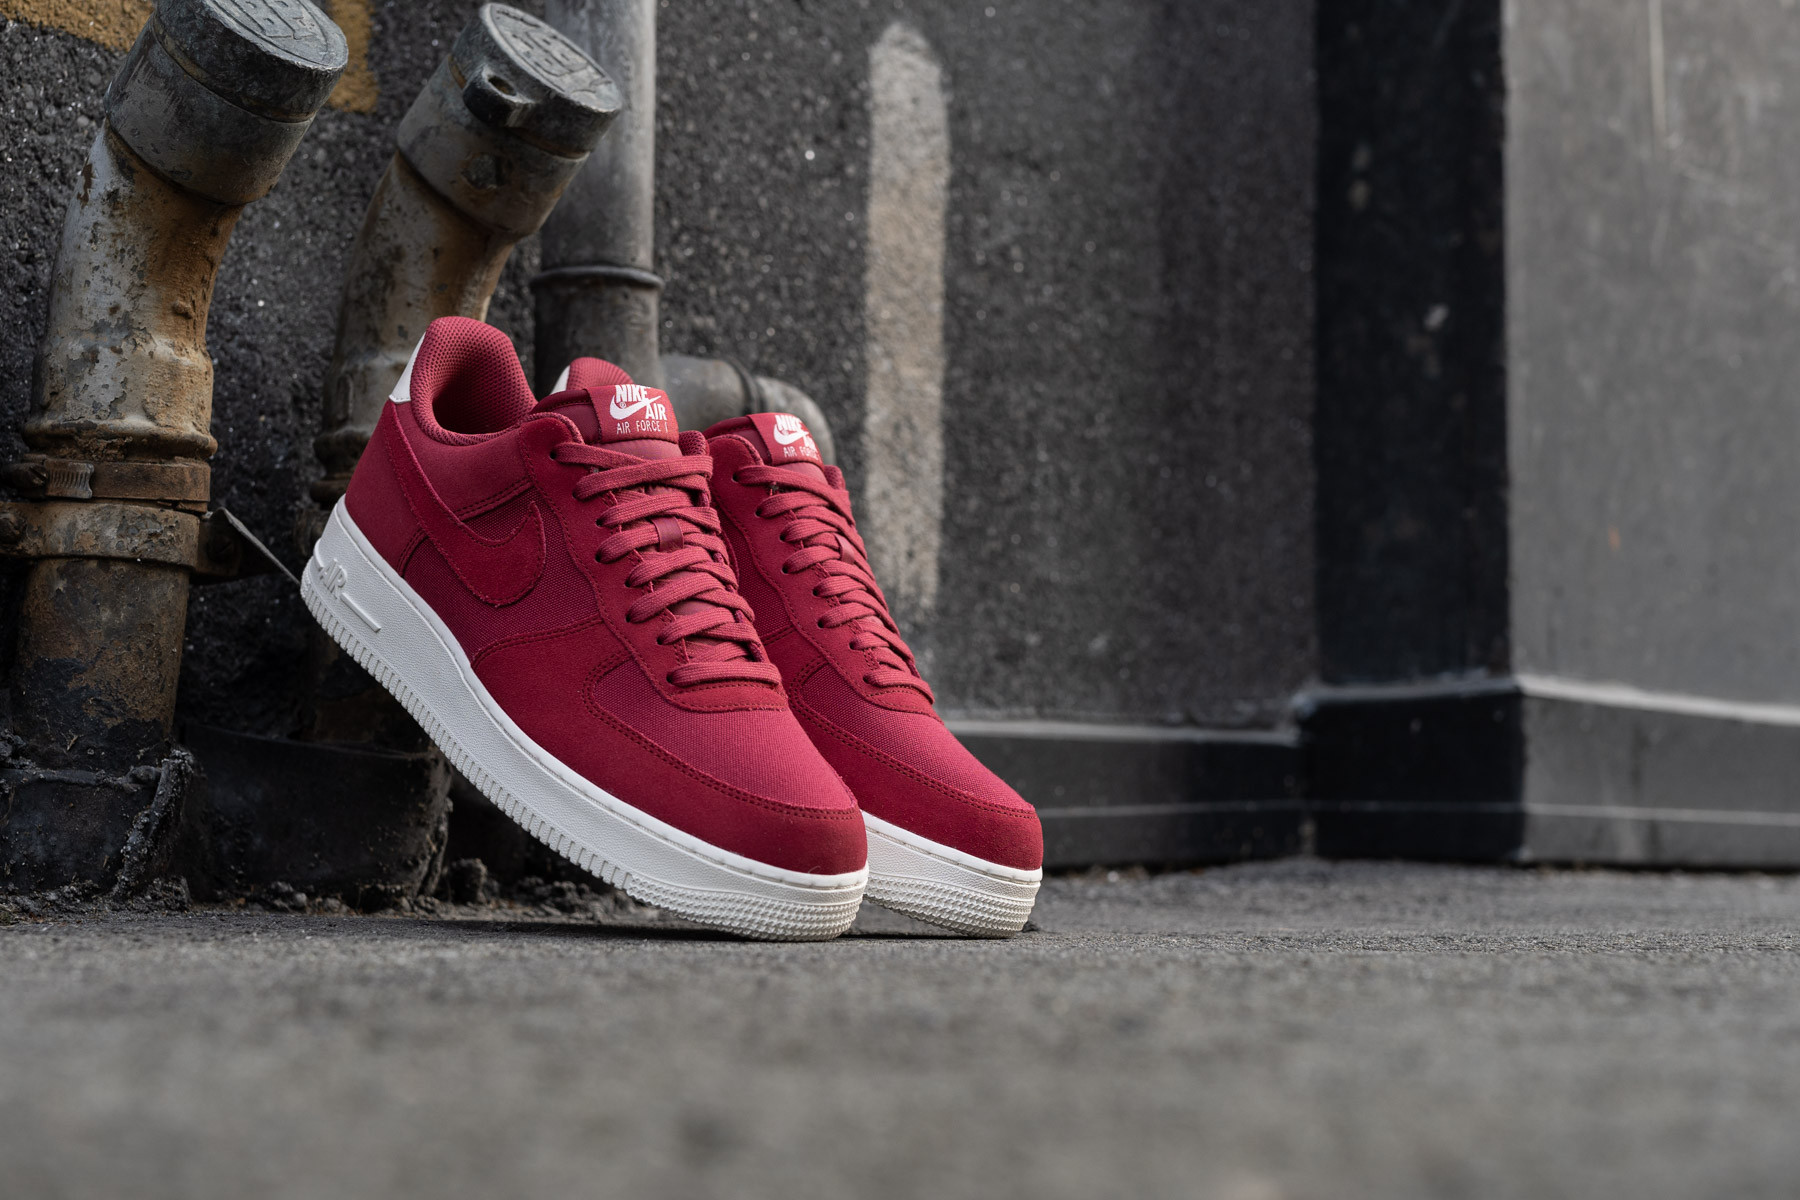 Details about Nike Air Force 1 Low Suede Red CrushRed Crush Sail AO3835 600 US Men Size 12.5